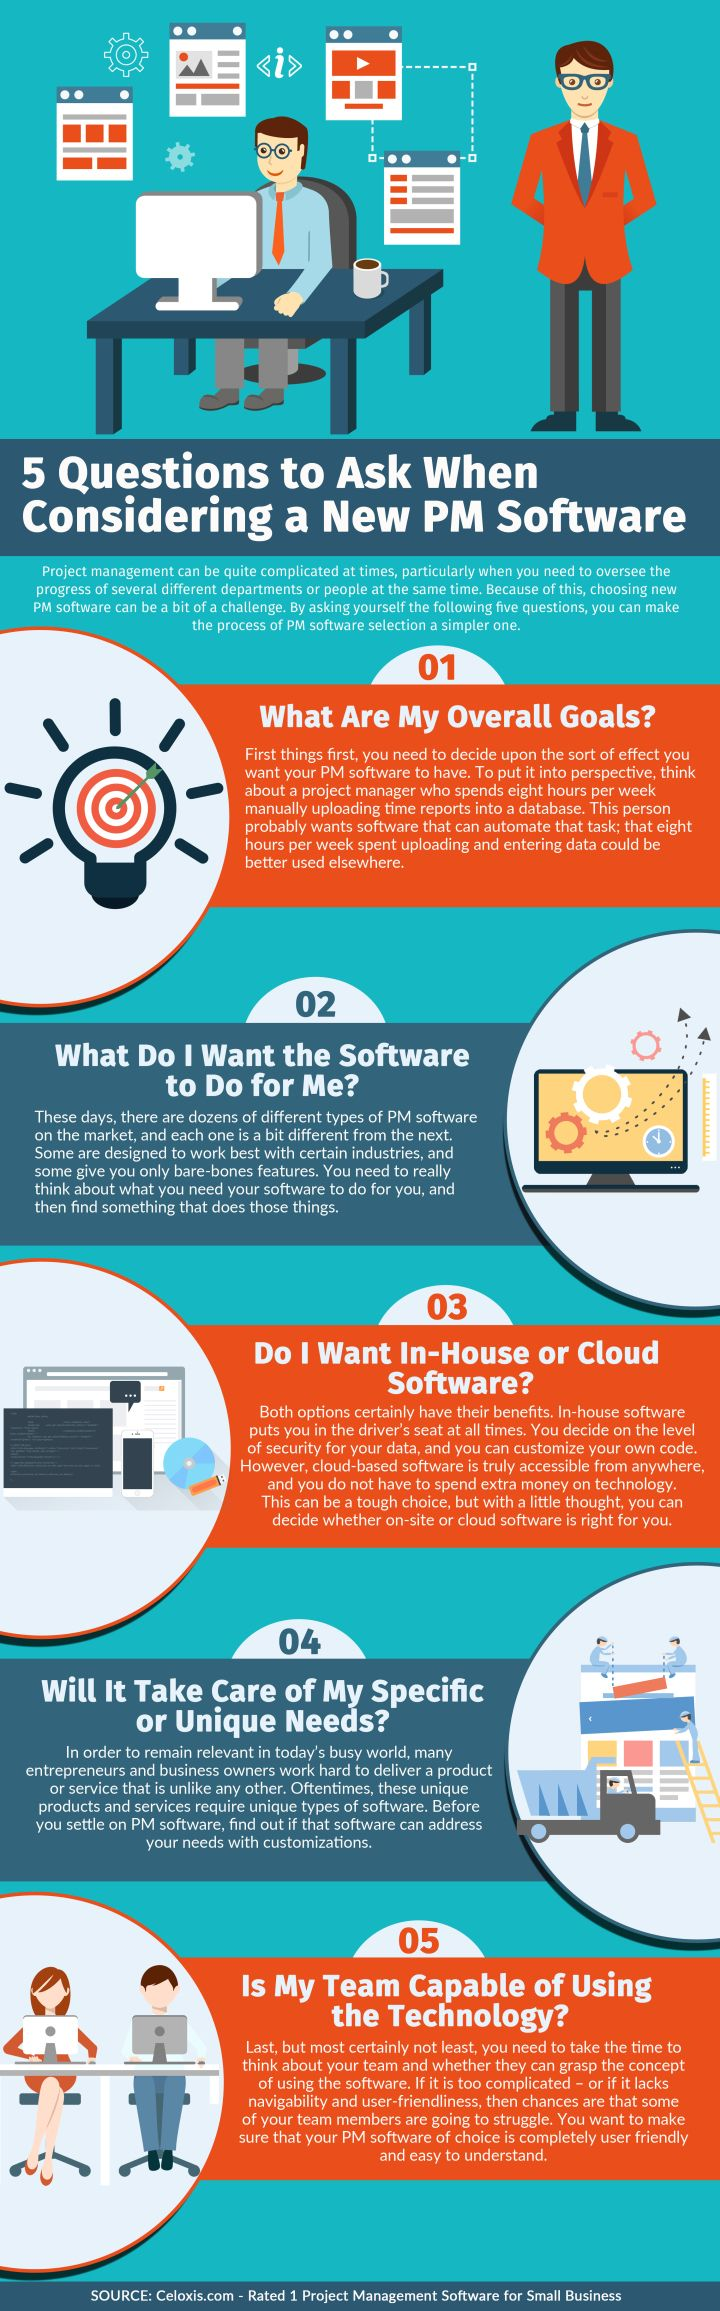 17 best images about celoxis project management software on infographic 5 questions to ask when considering a new pm software